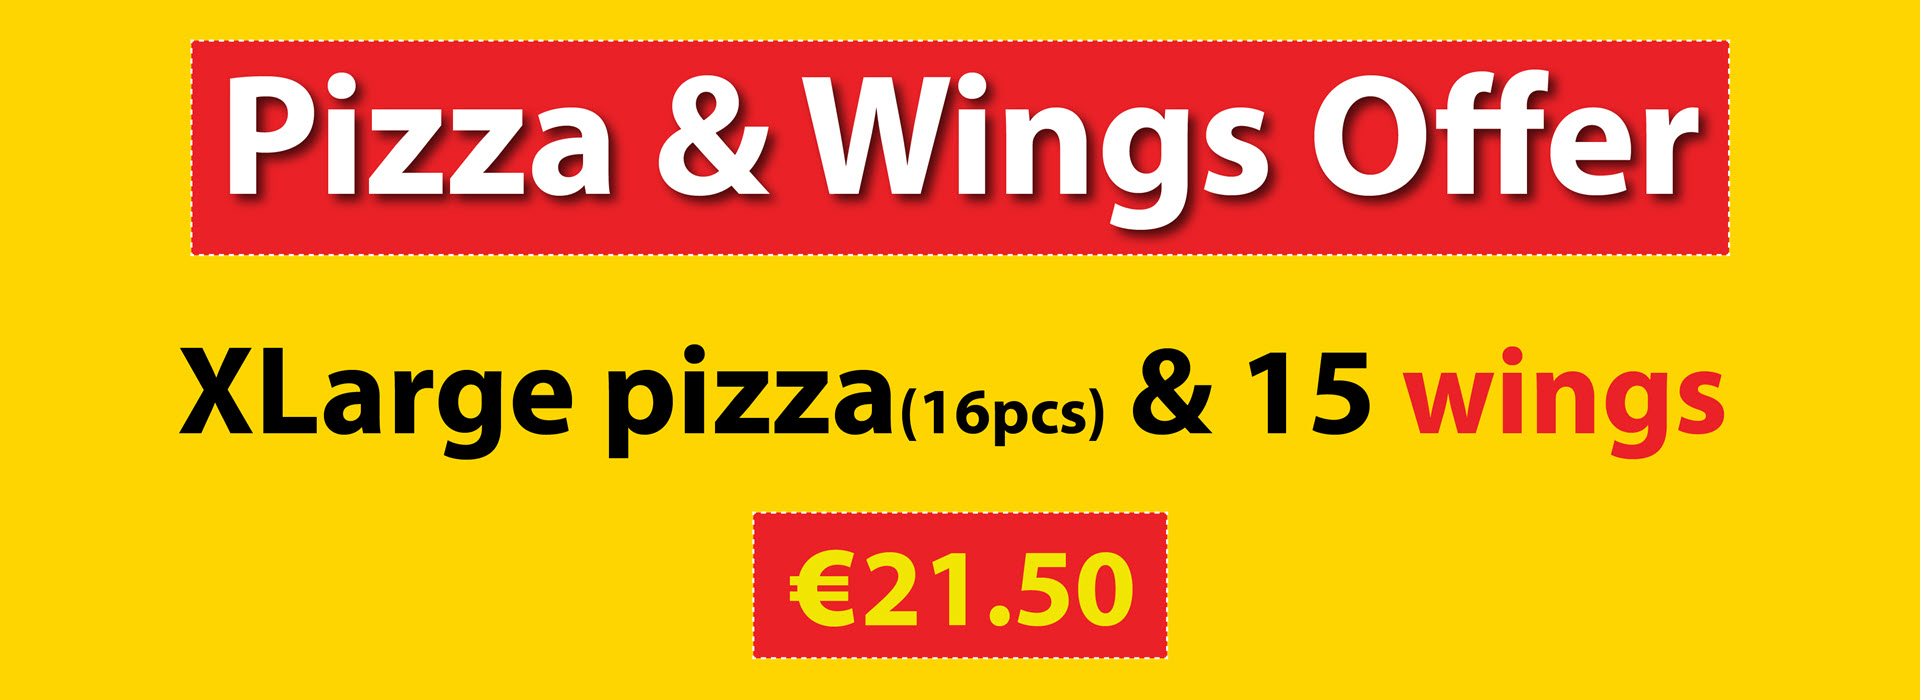 Pizza & Wings Offer